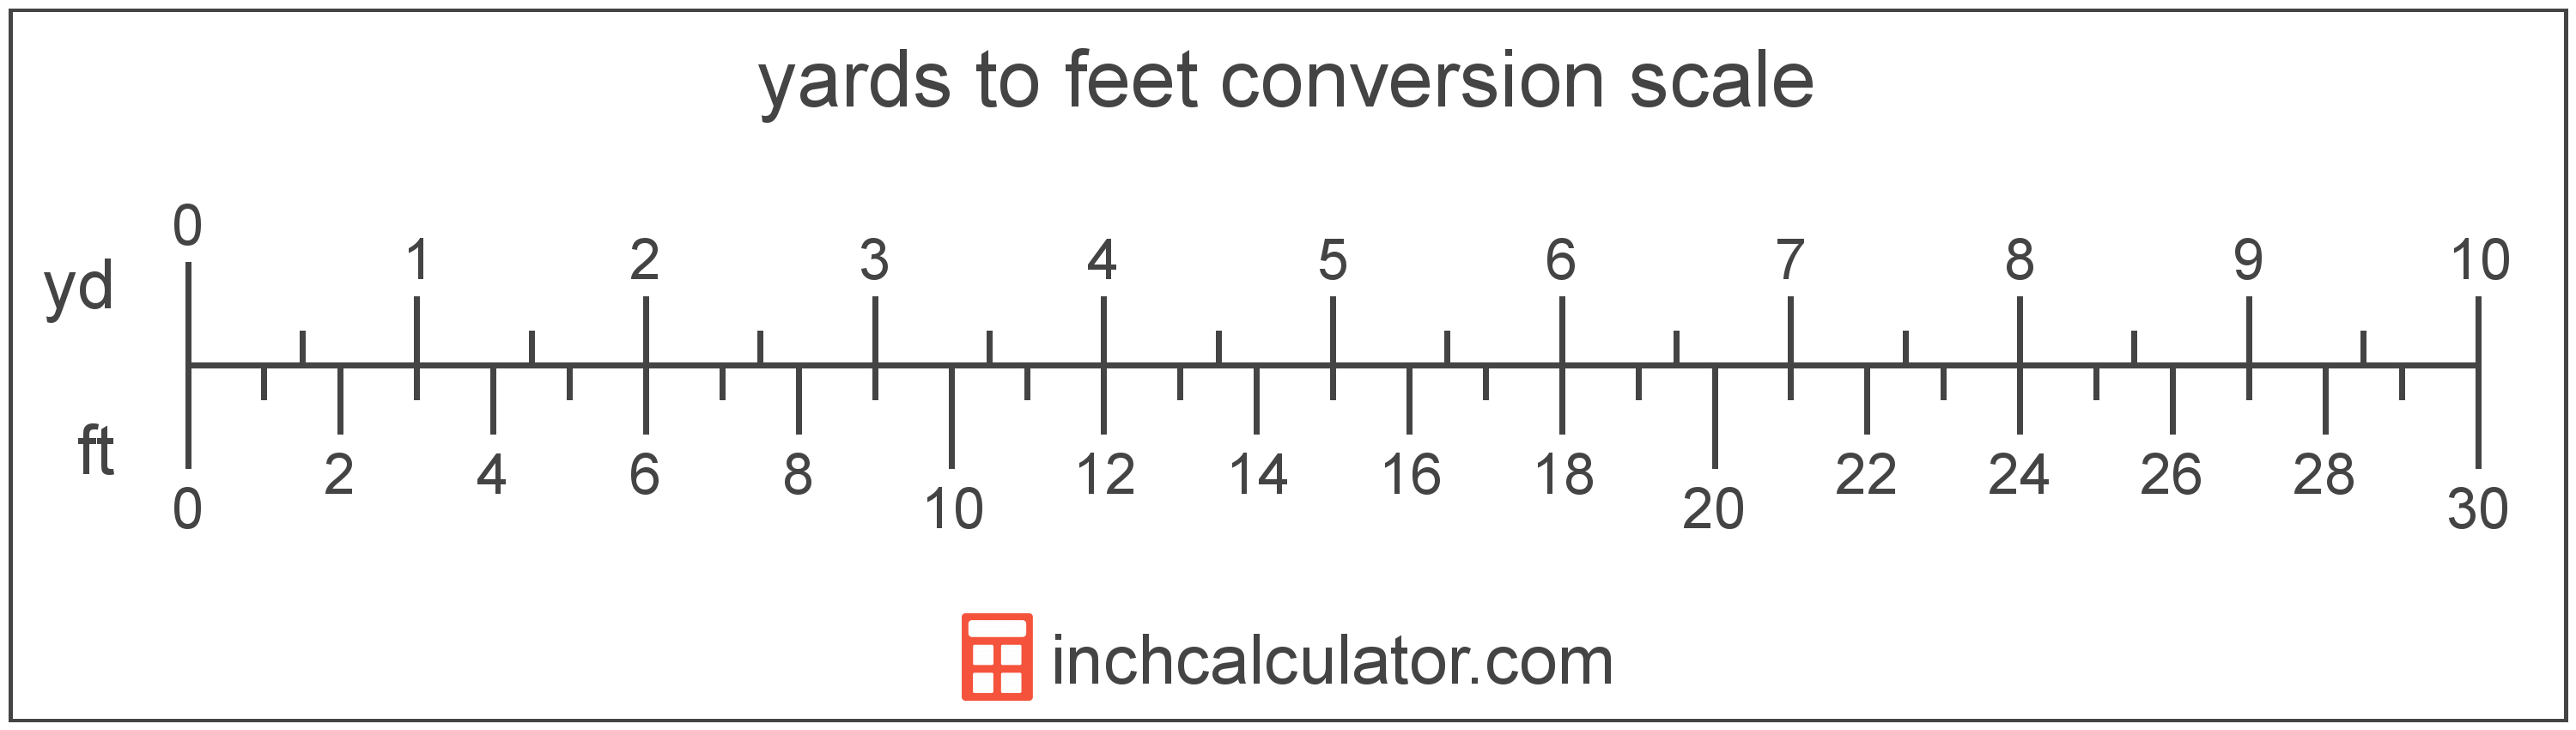 Yards to Feet Conversion - (yd to ft) - Inch Calculator